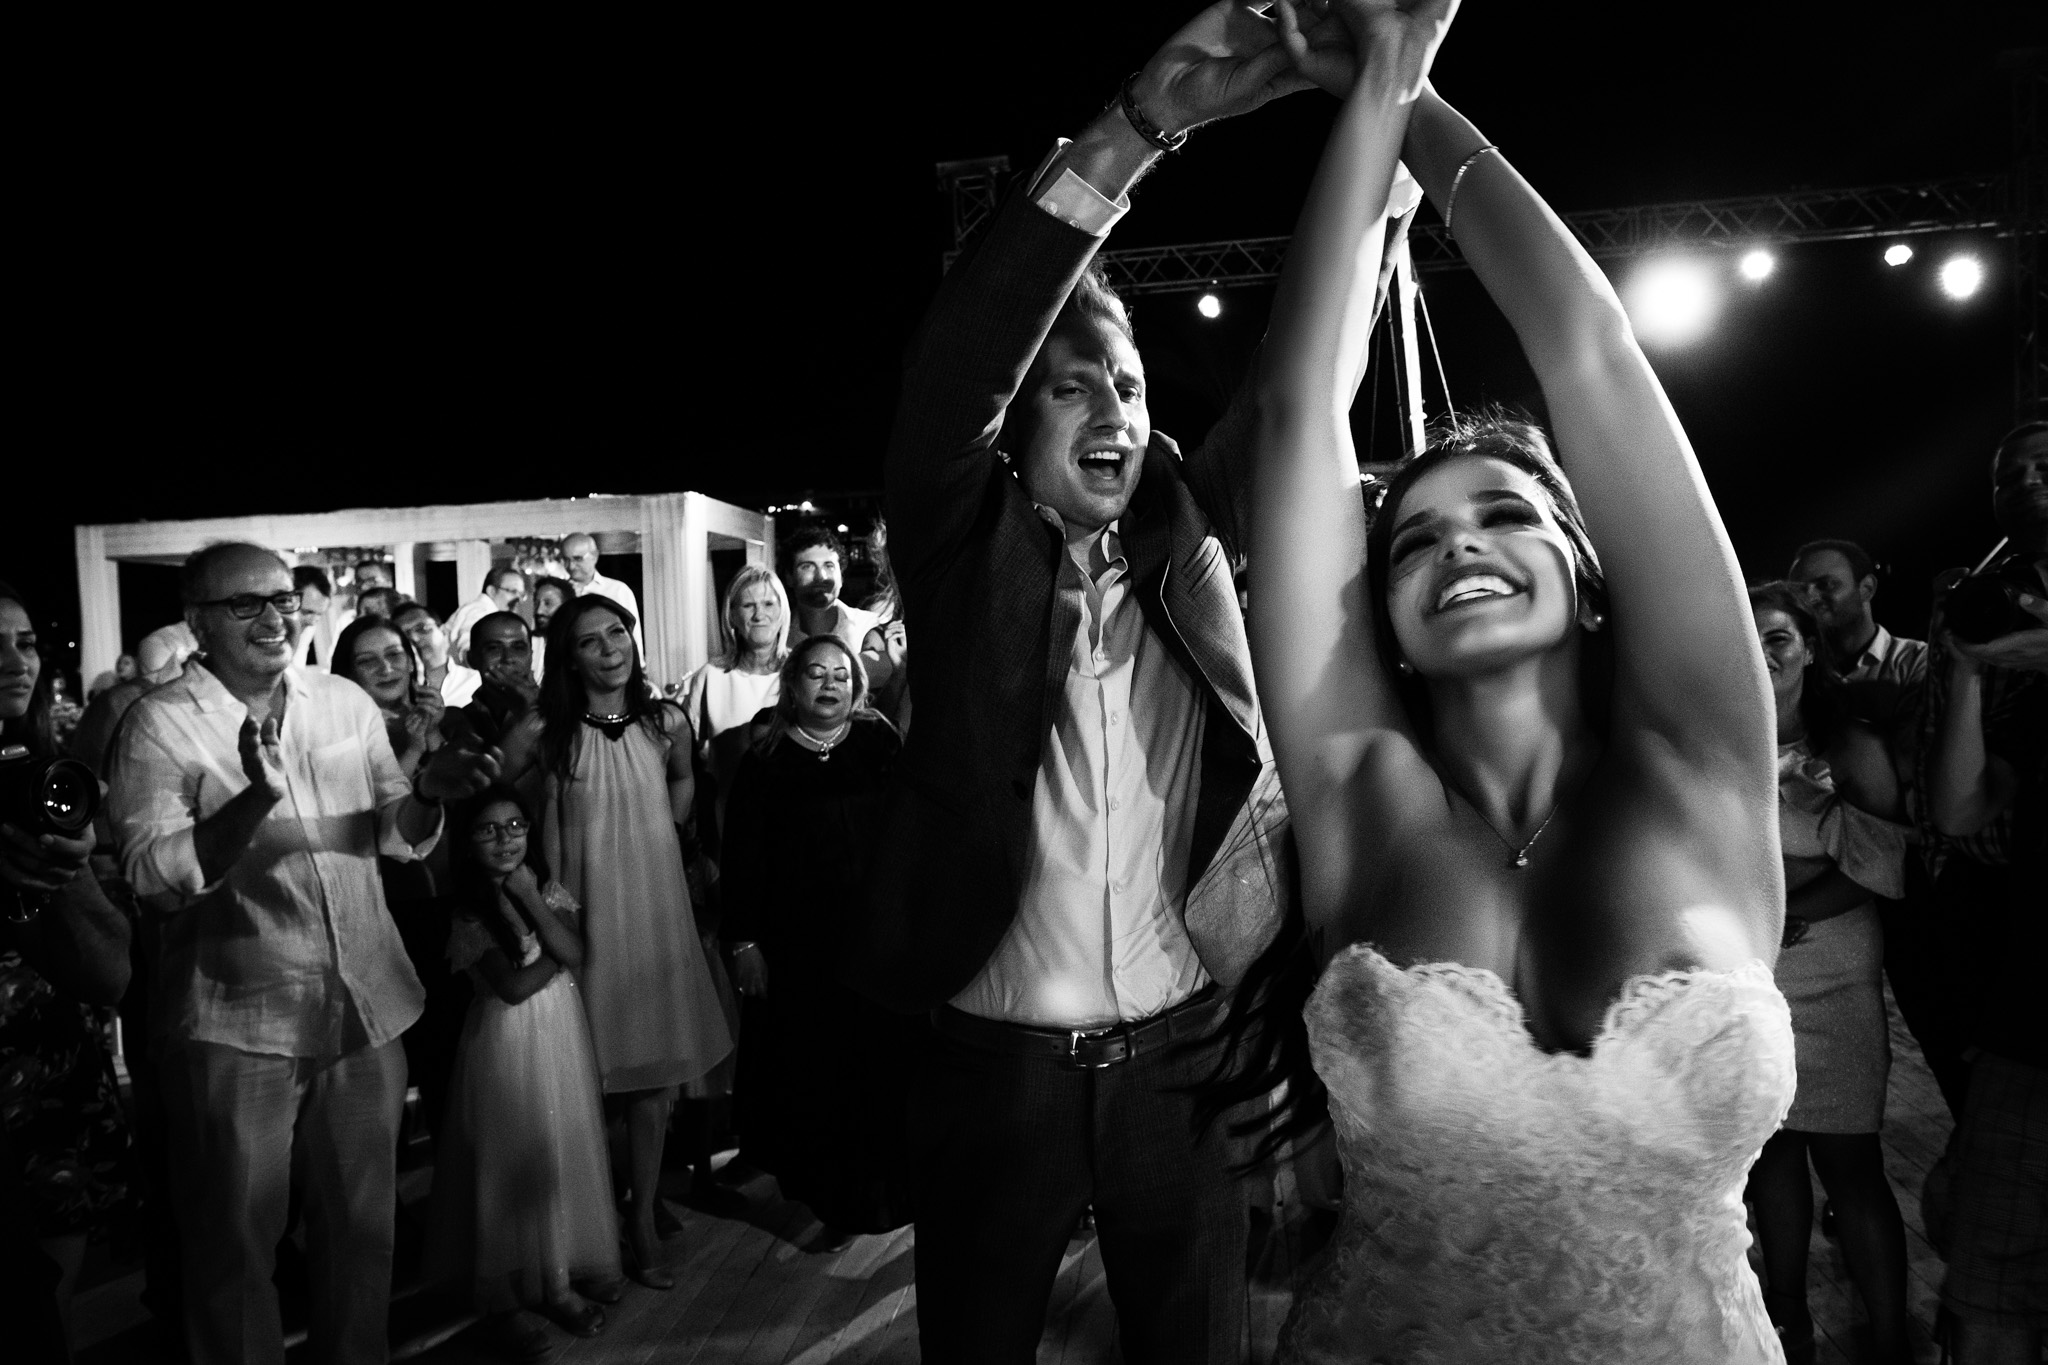 wedding-in-egitto-55.jpg